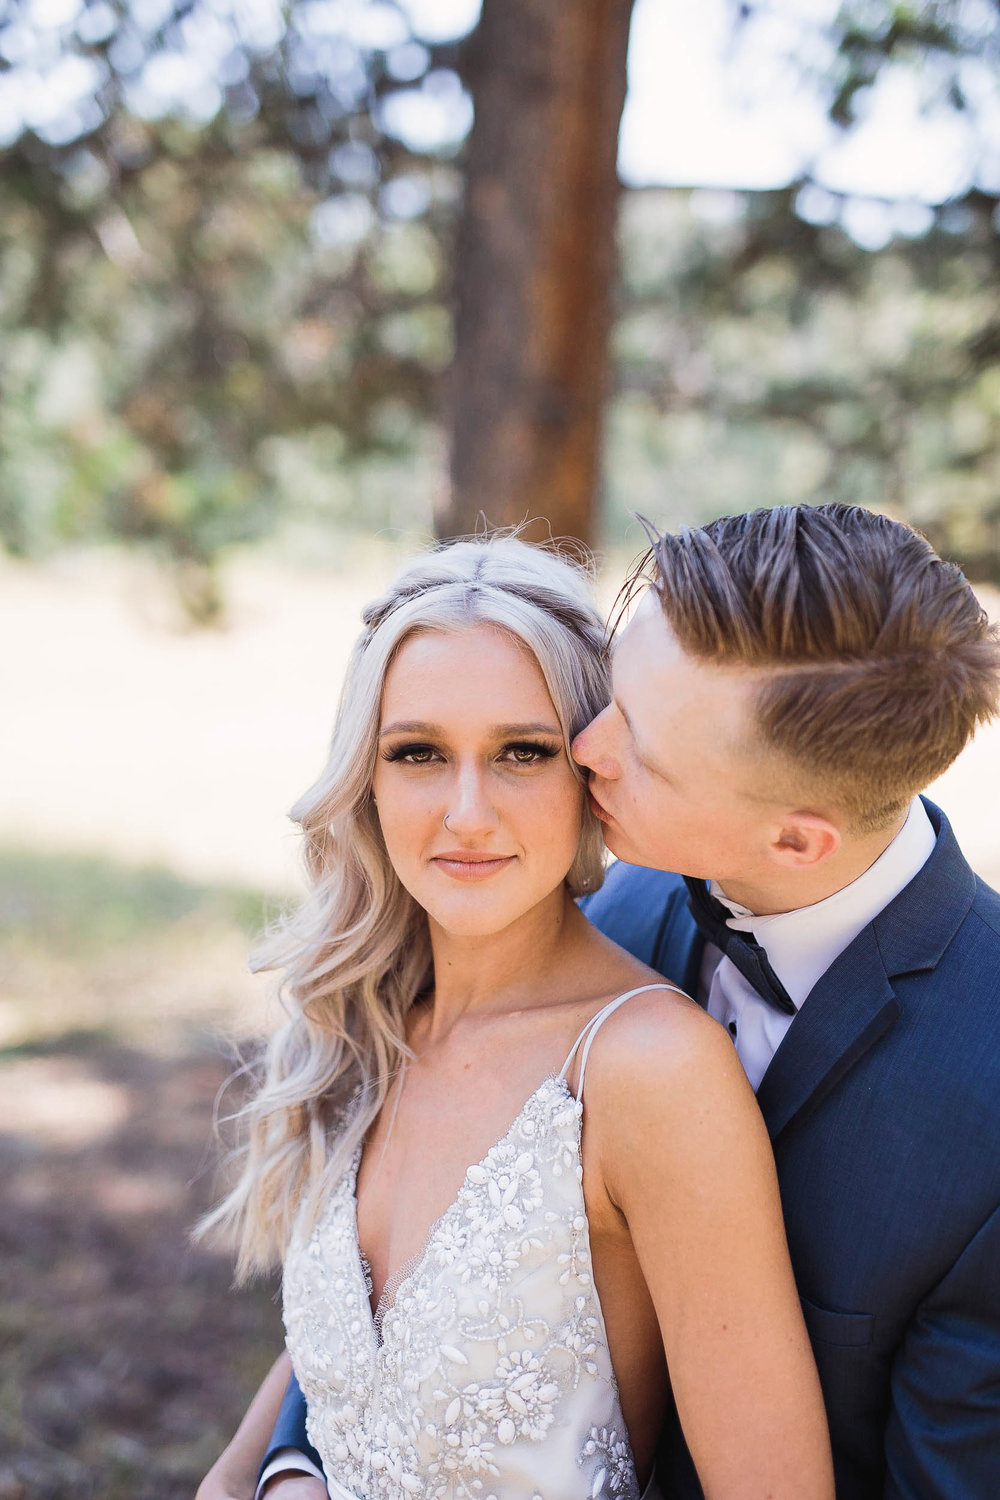 Stunning bride and groom wedding day portraits